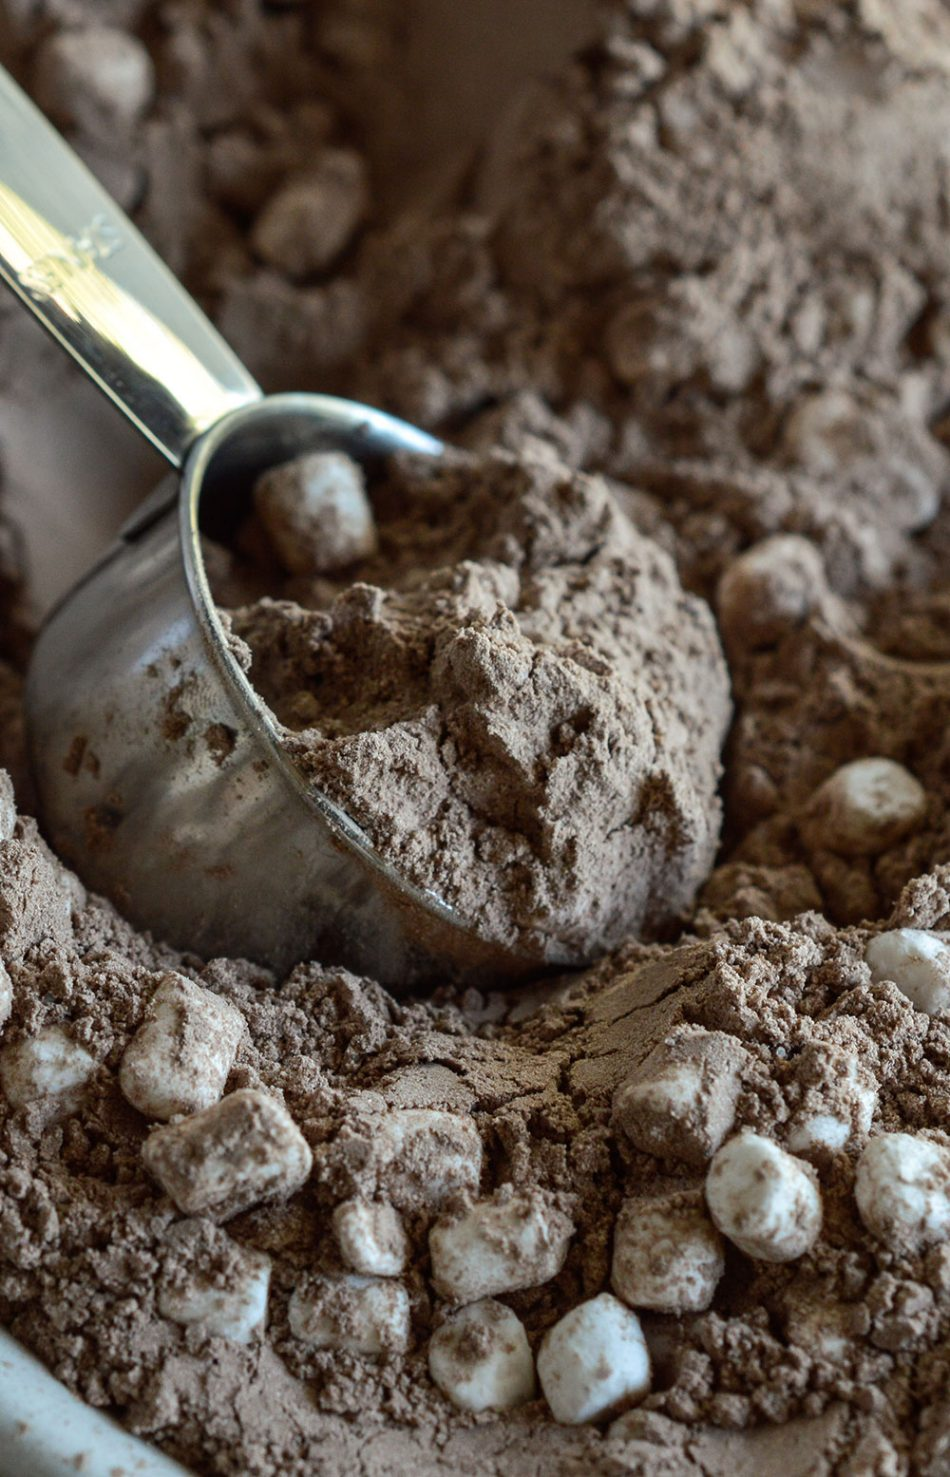 Make this homemade Hot Cocoa Mix Recipe for yourself or to give as an edible gift. This DIY cocoa mix makes the perfect sweet, chocolate beverage to drink on chilly winter nights!